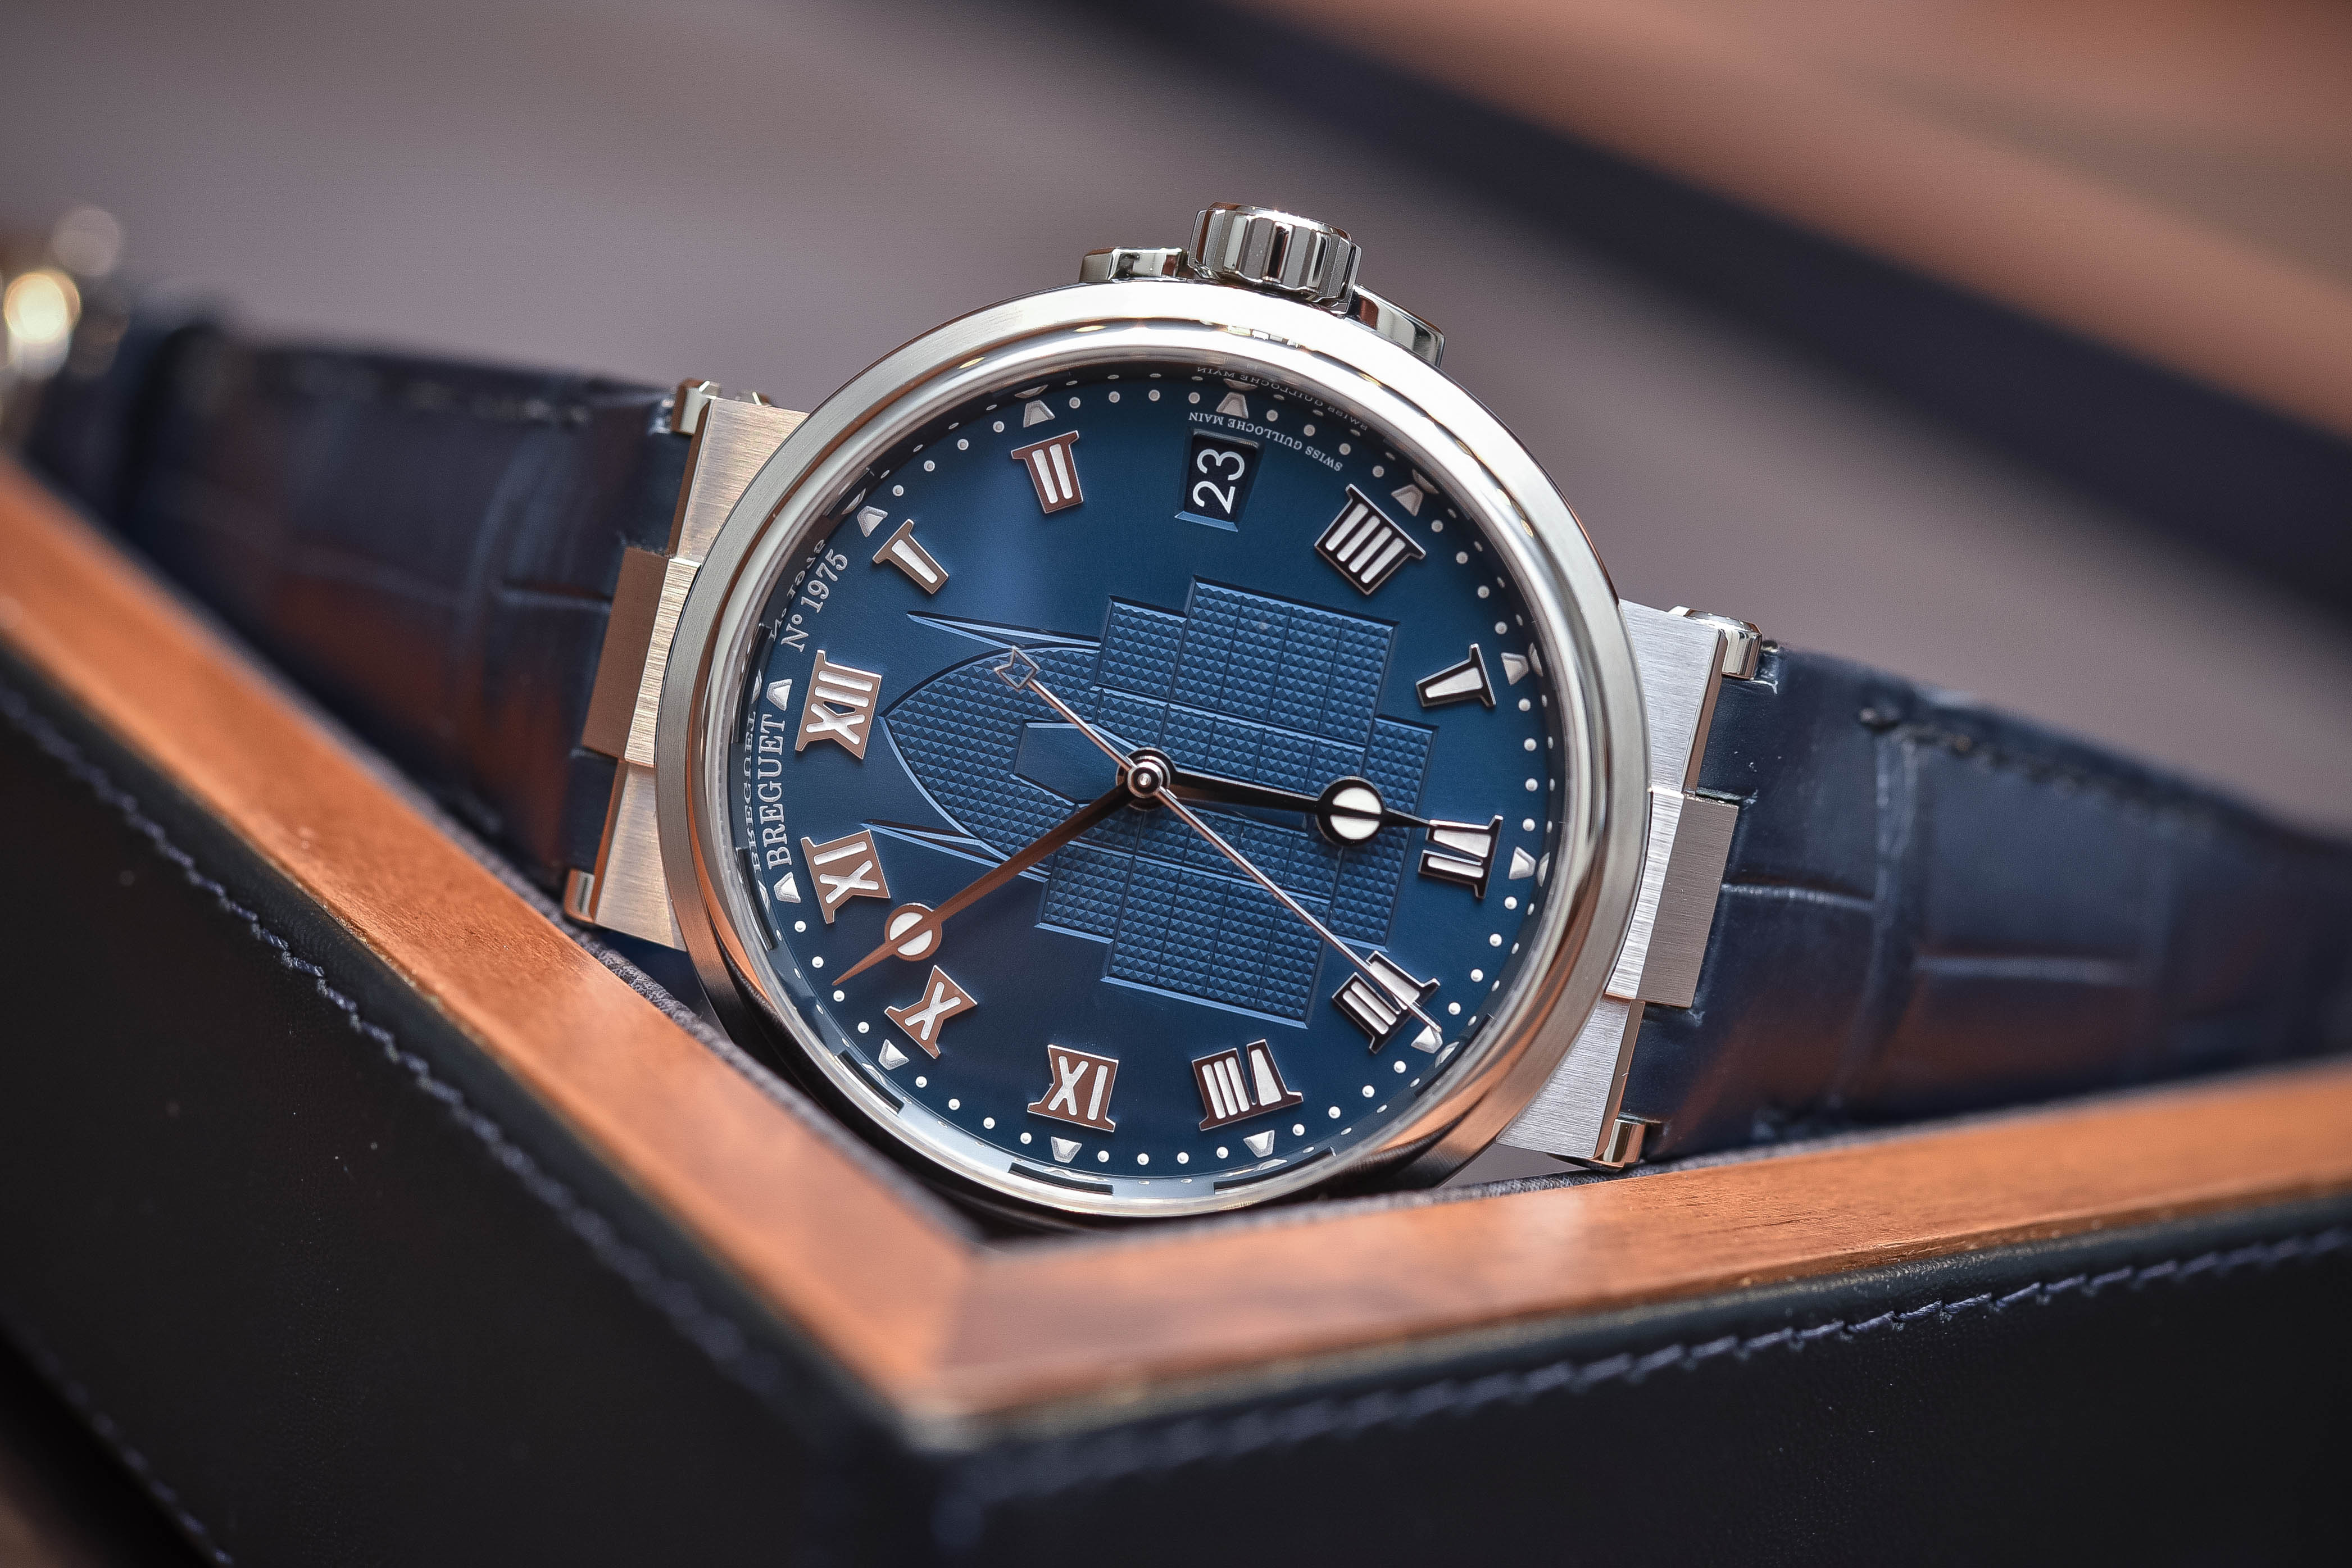 Breguet Marine 5517 The race for water special edition